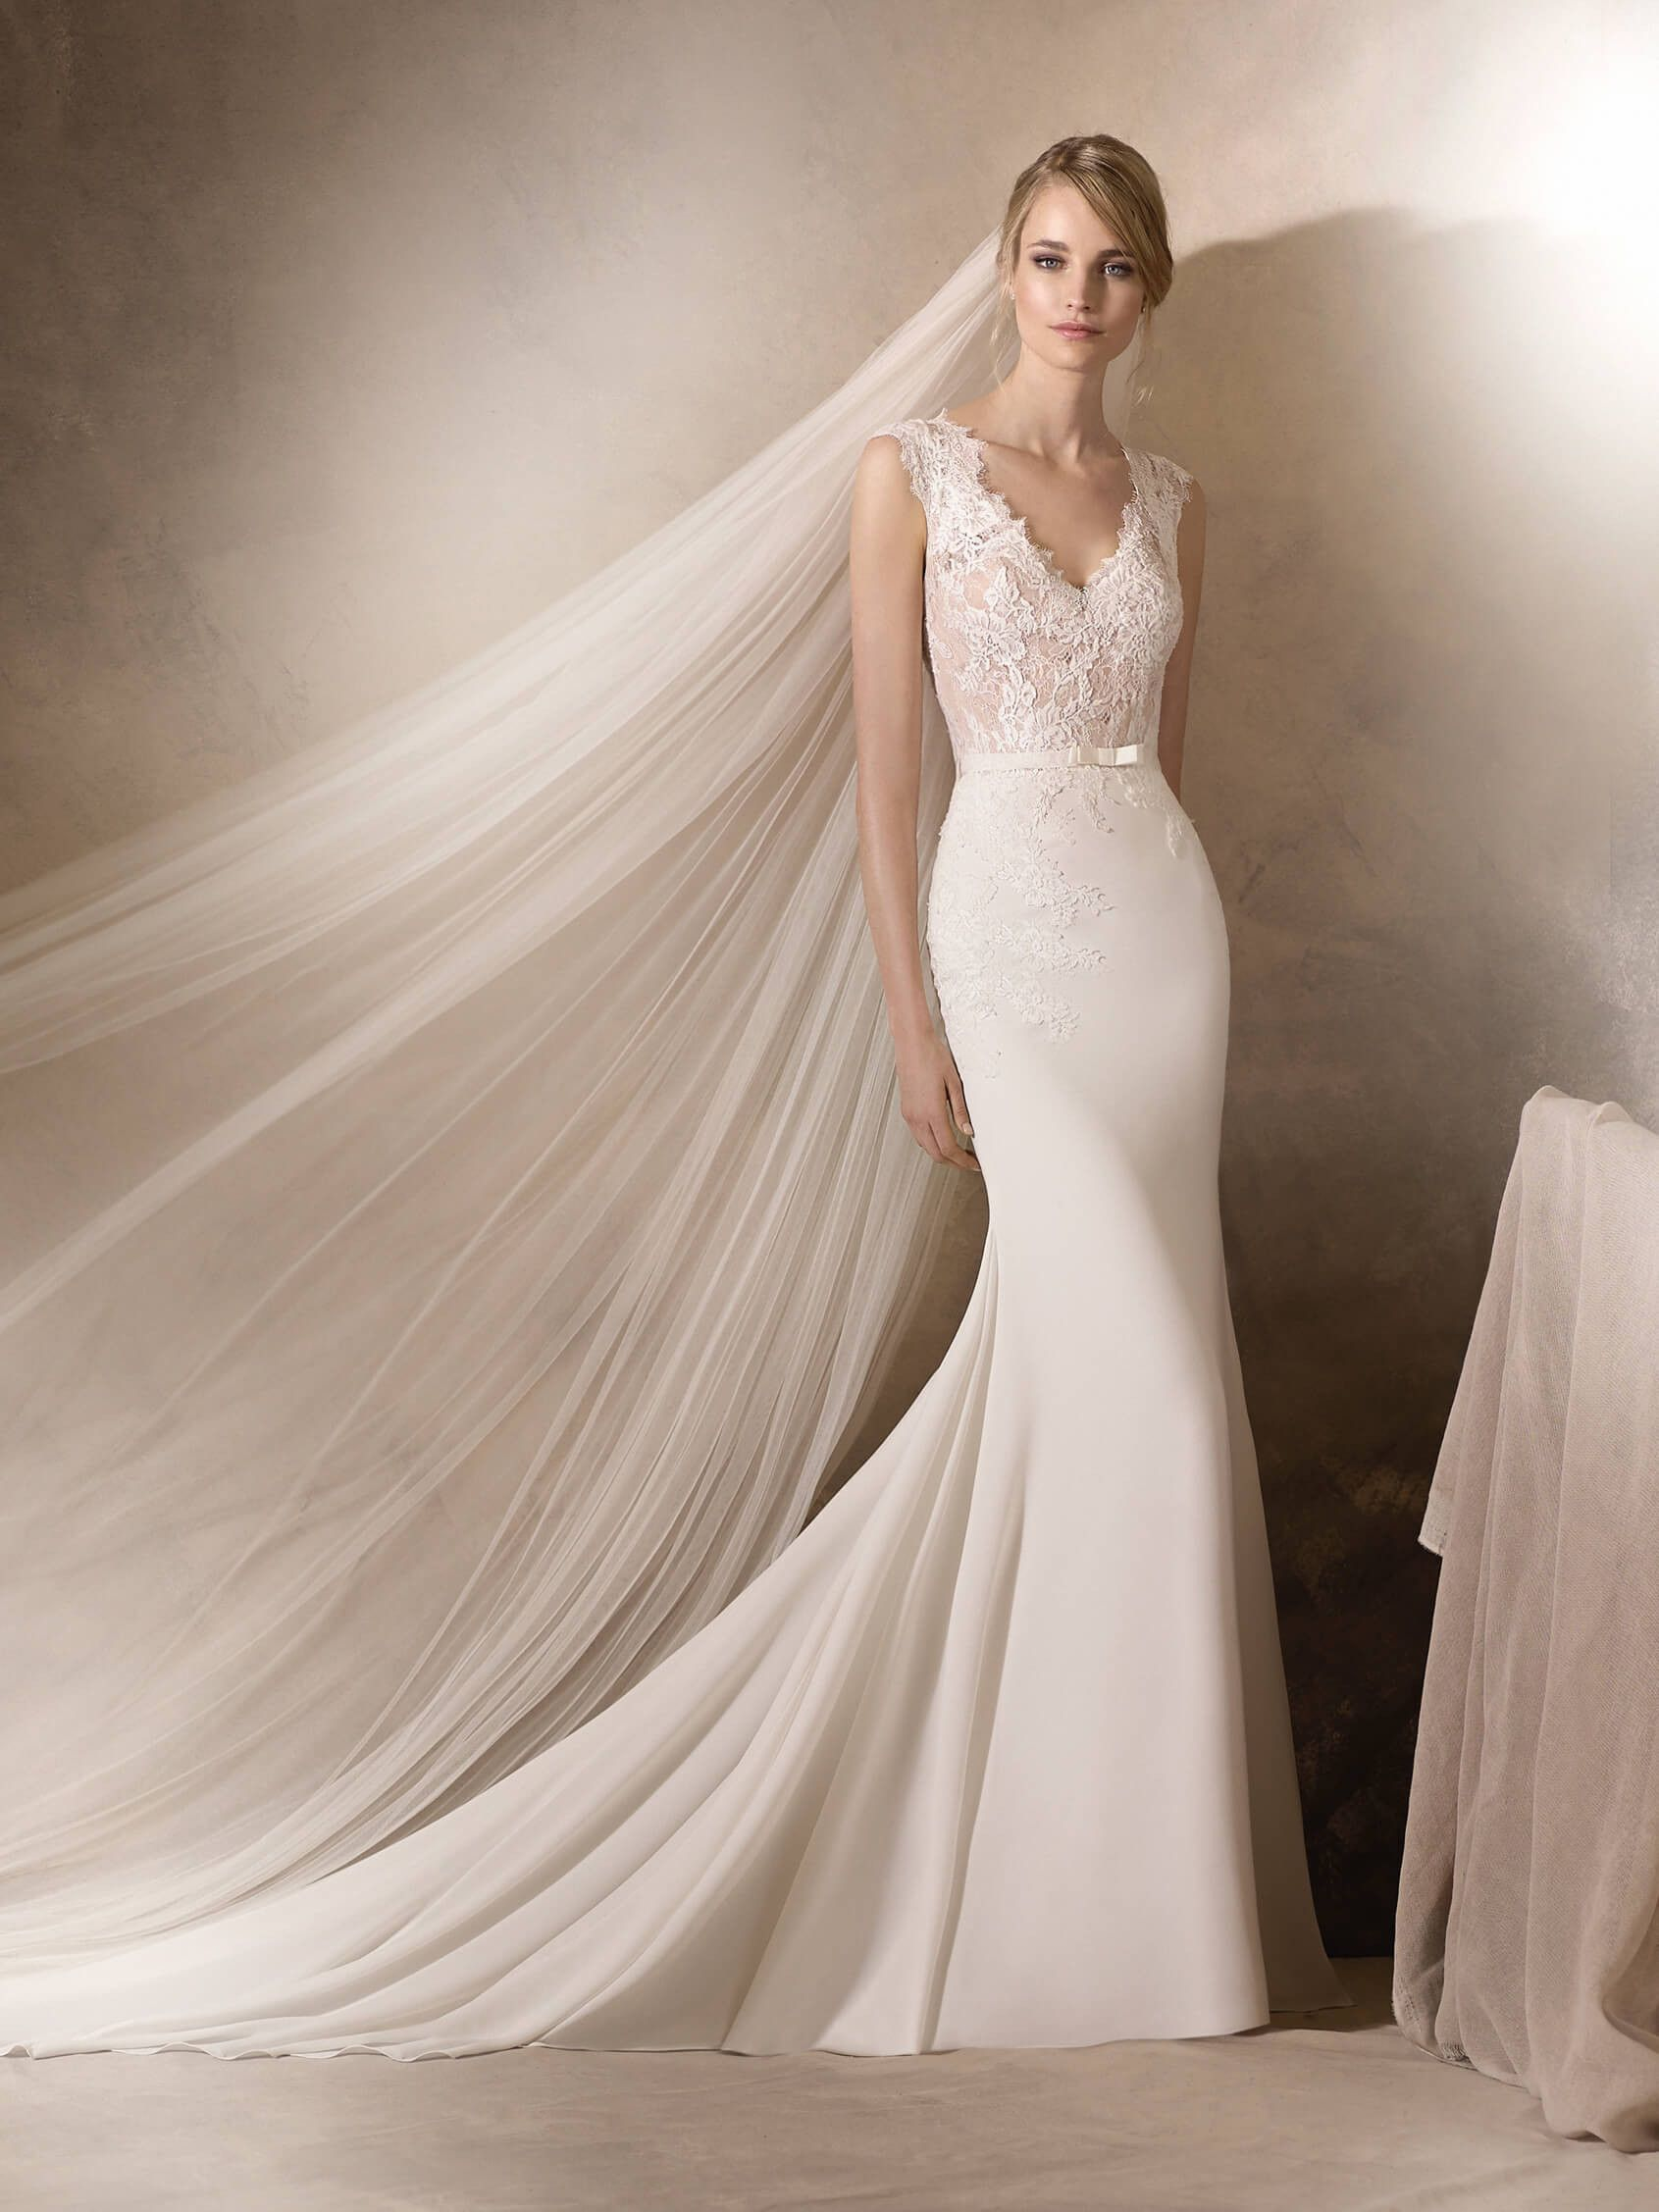 This wedding dress in crepe and Chantilly and lace work on